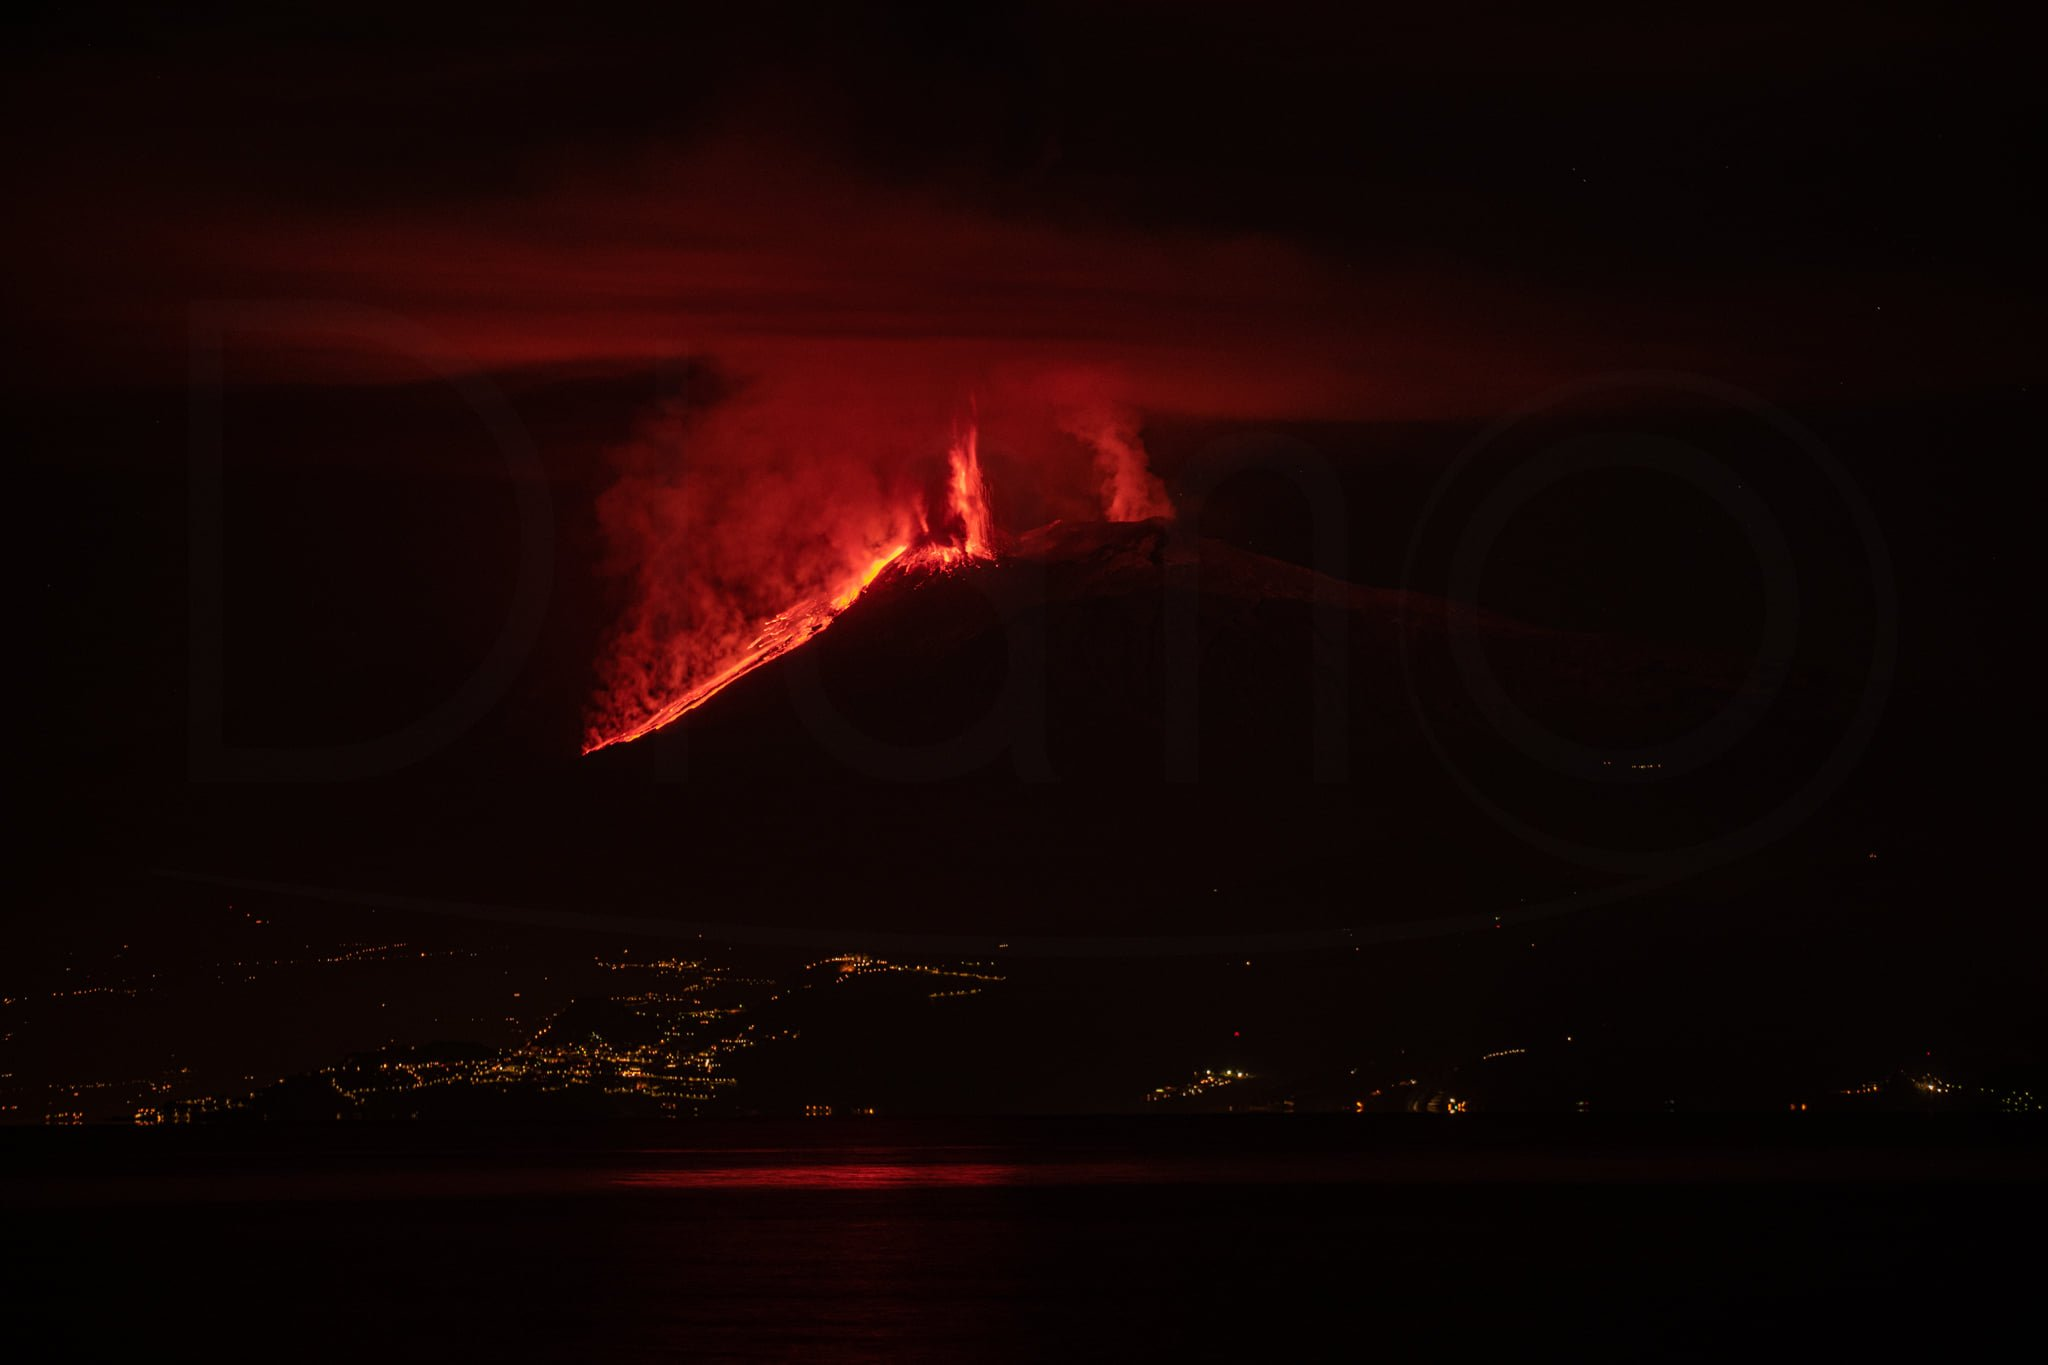 4th eruption, 20th feb 2021. View from Calabria, 70 km far,A. Diano